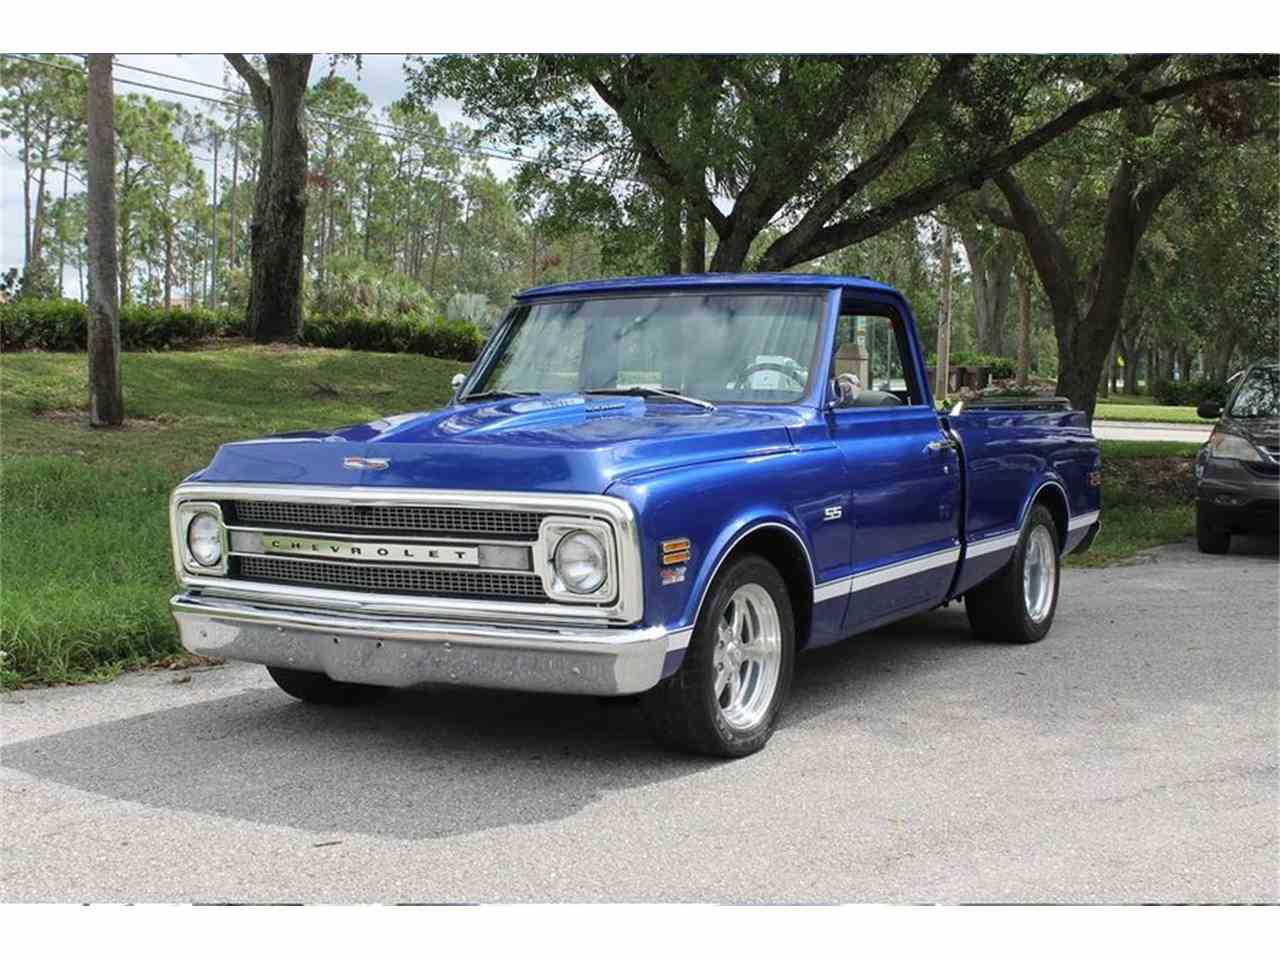 All Chevy 1969 chevrolet c10 for sale : 1969 Chevrolet C10 for Sale | ClassicCars.com | CC-1040322